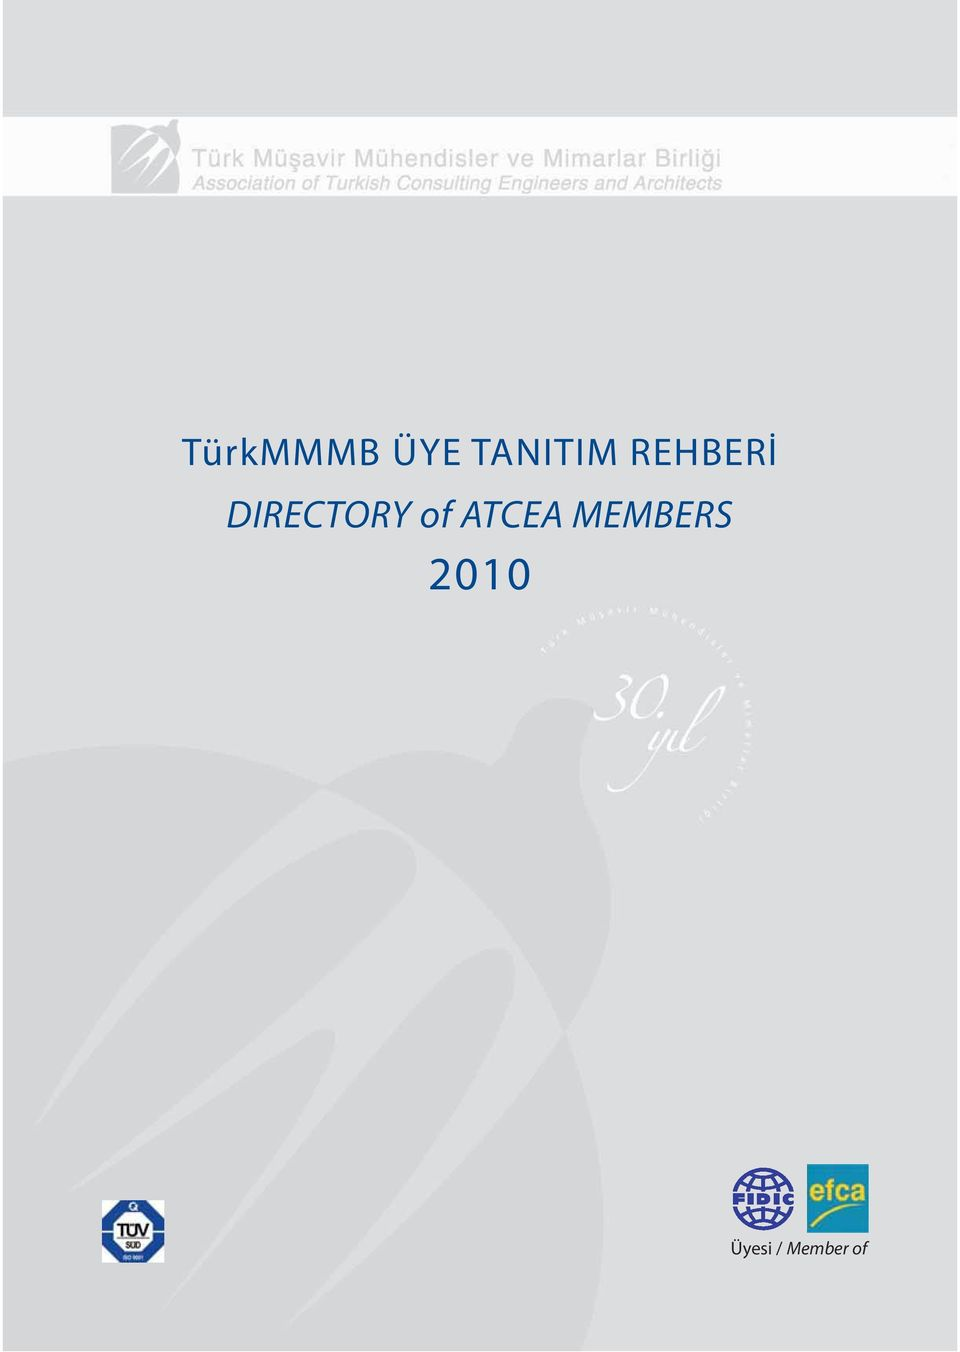 DIRECTORY of ATCEA